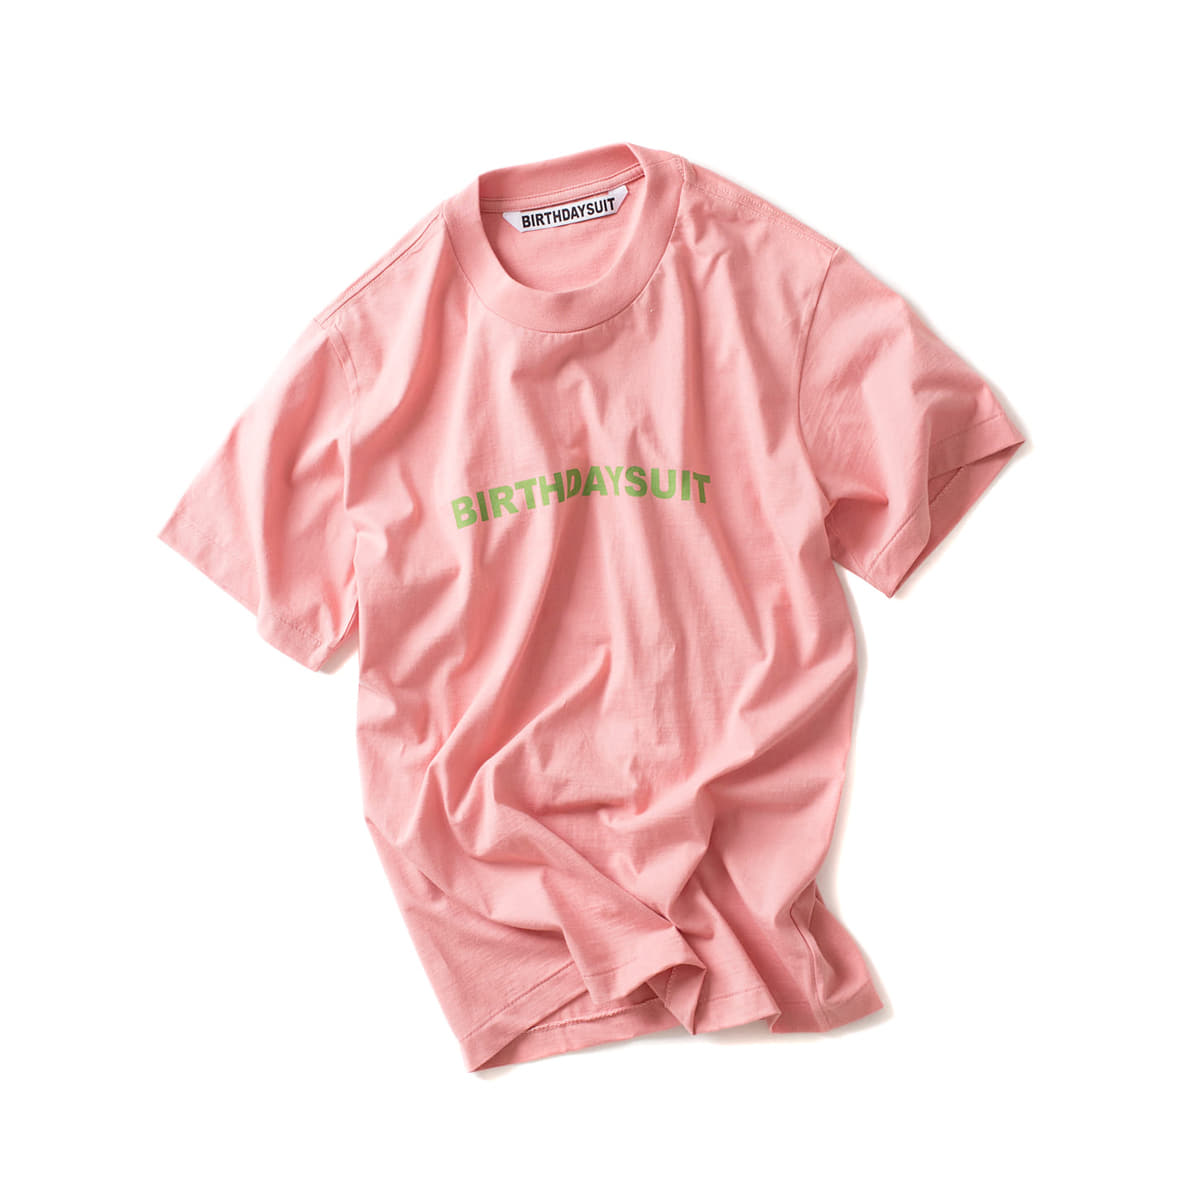 [BIRTHDAYSUIT] LOGO TEE 'BASKIN'